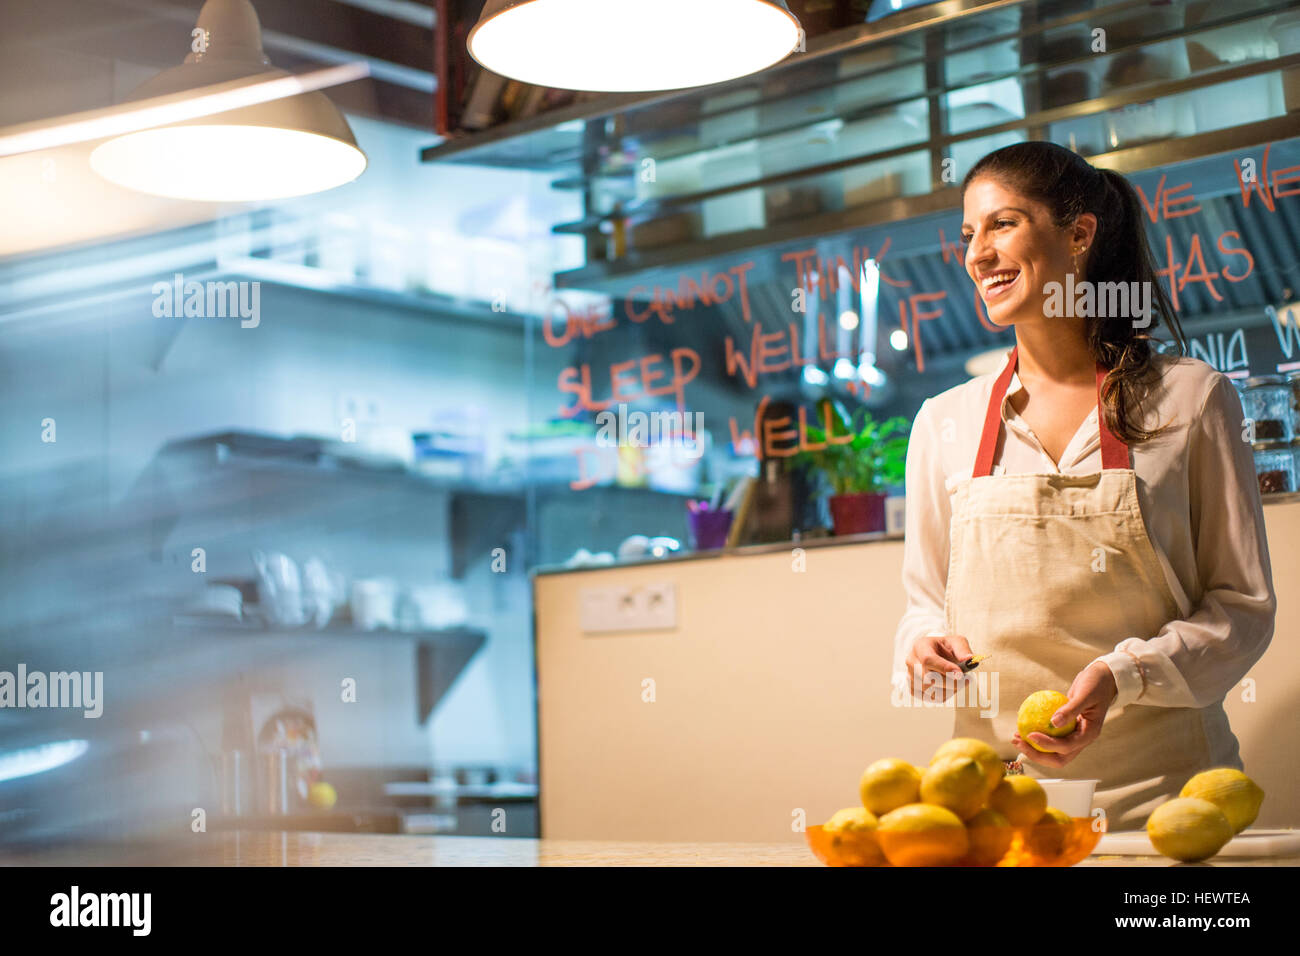 Restaurant owner peeling lemons in kitchen - Stock Image